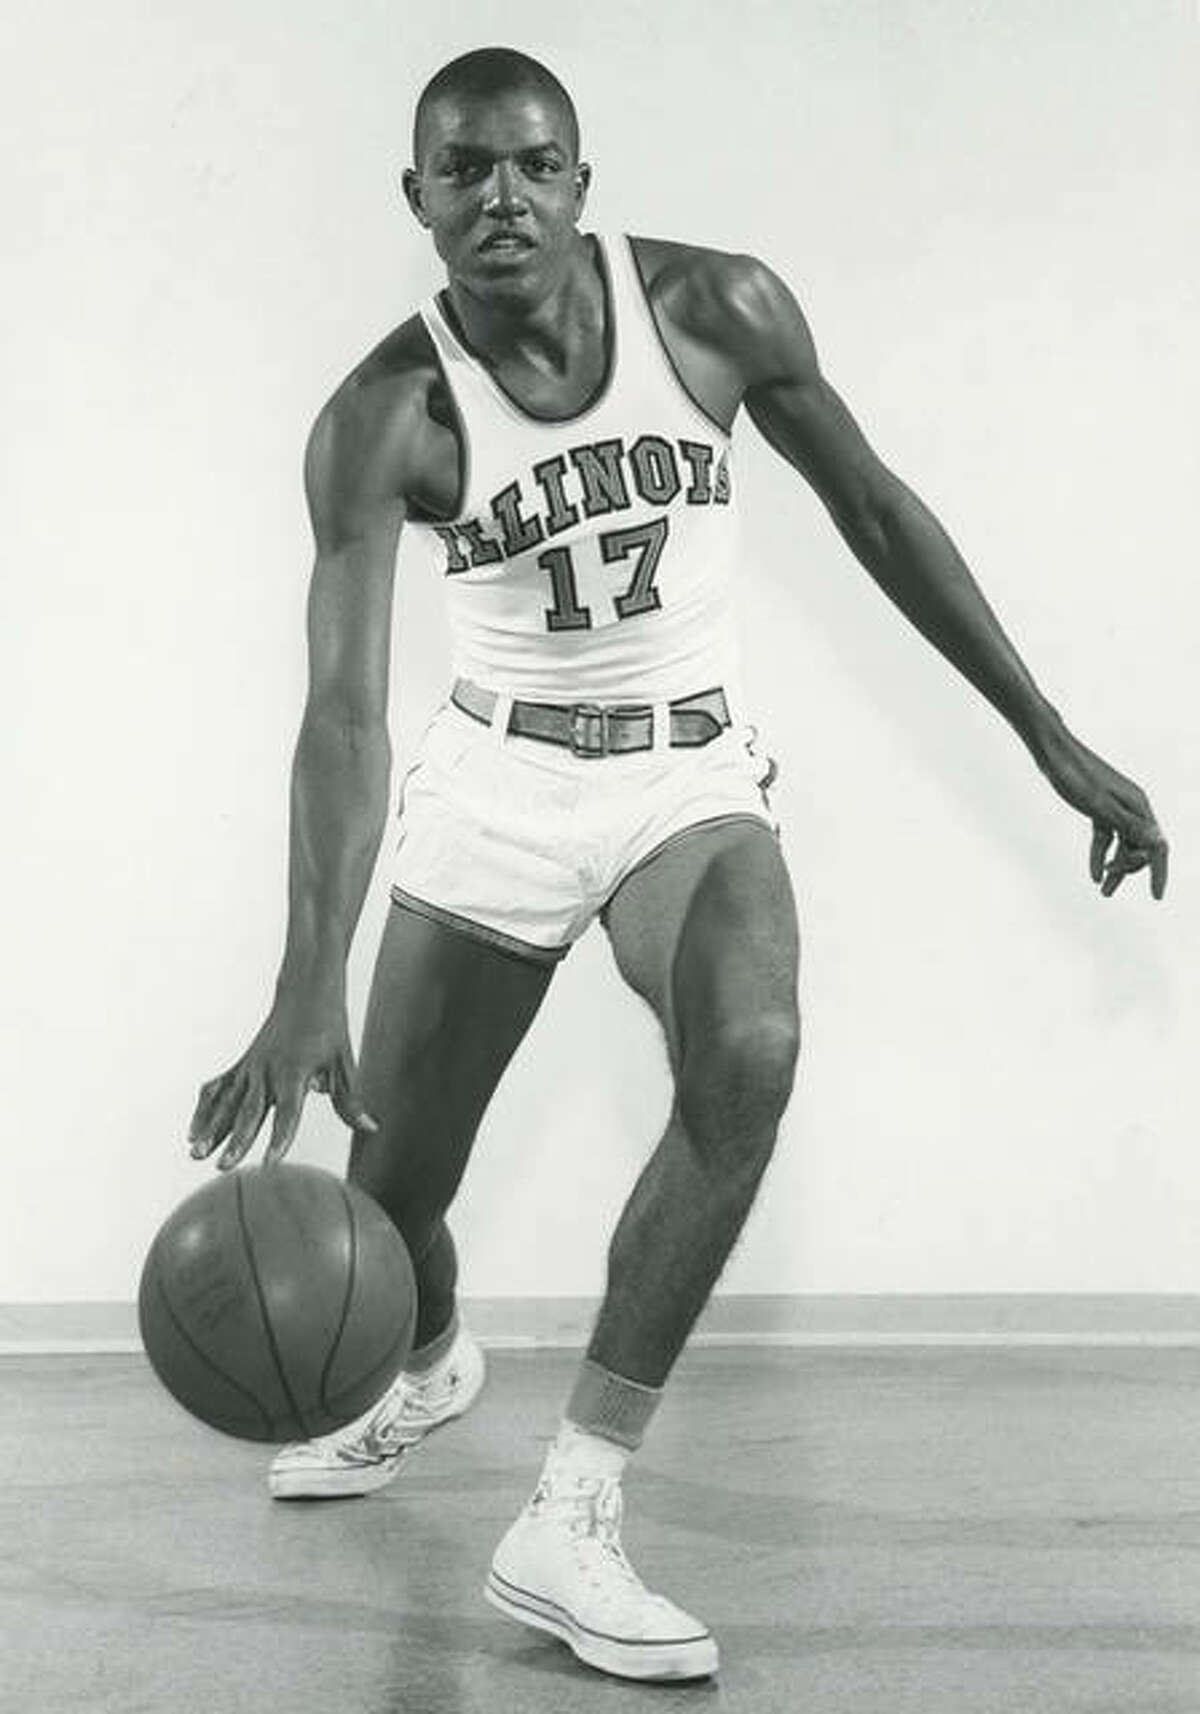 A two-time honorable mention All-American at Illinois, Edwardsville graduate Govoner Vaughn was the MVP for the Illini during his senior season in 1959-60.